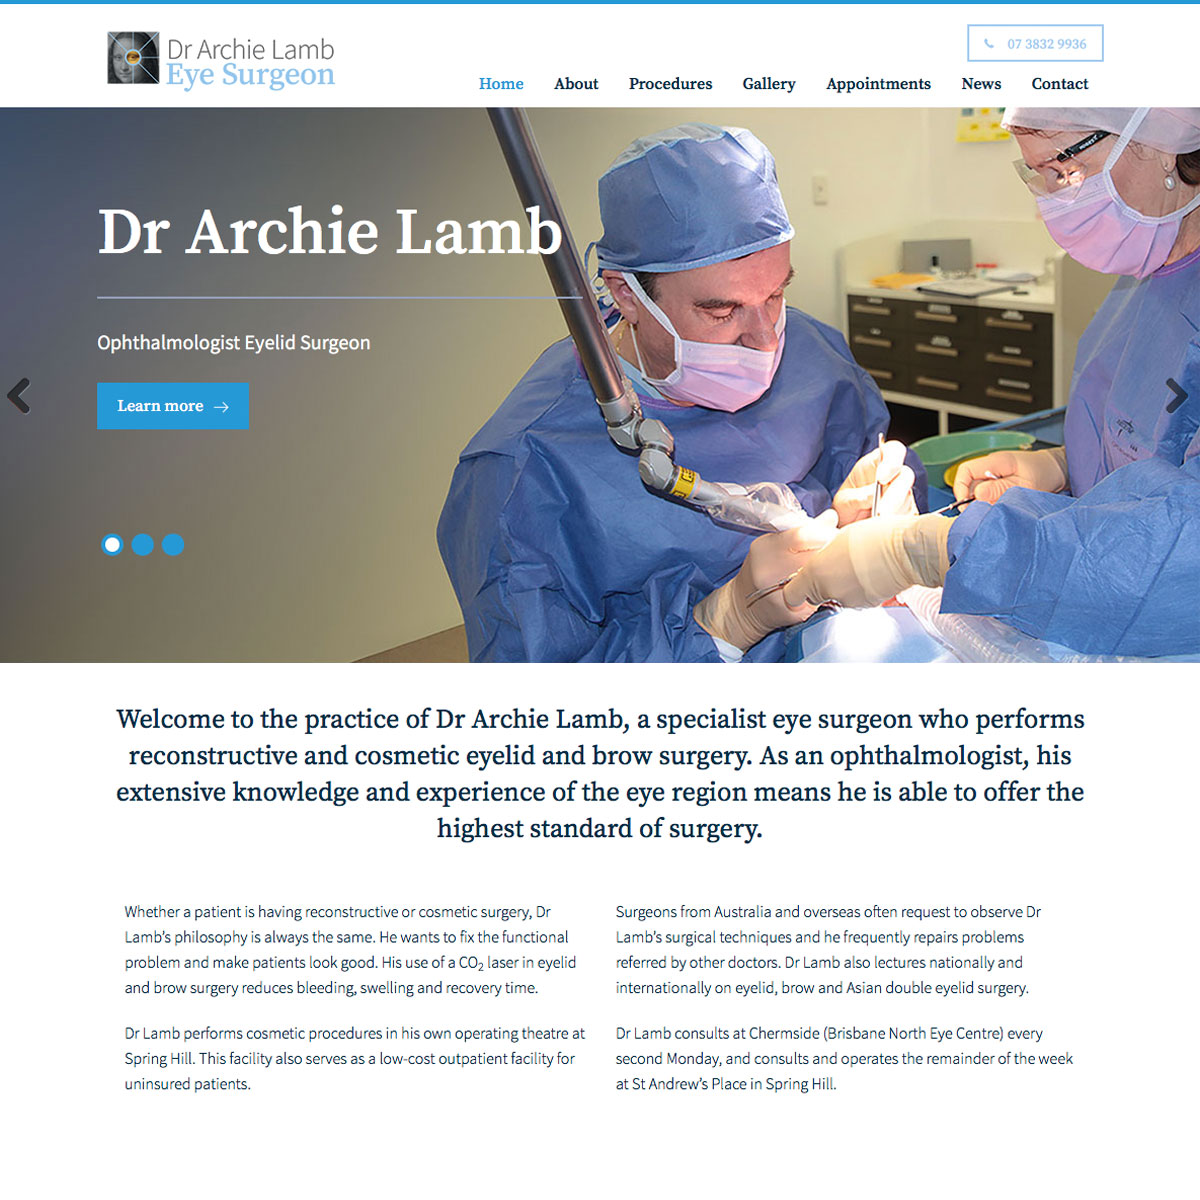 Dr Archie Lamb - Home Page